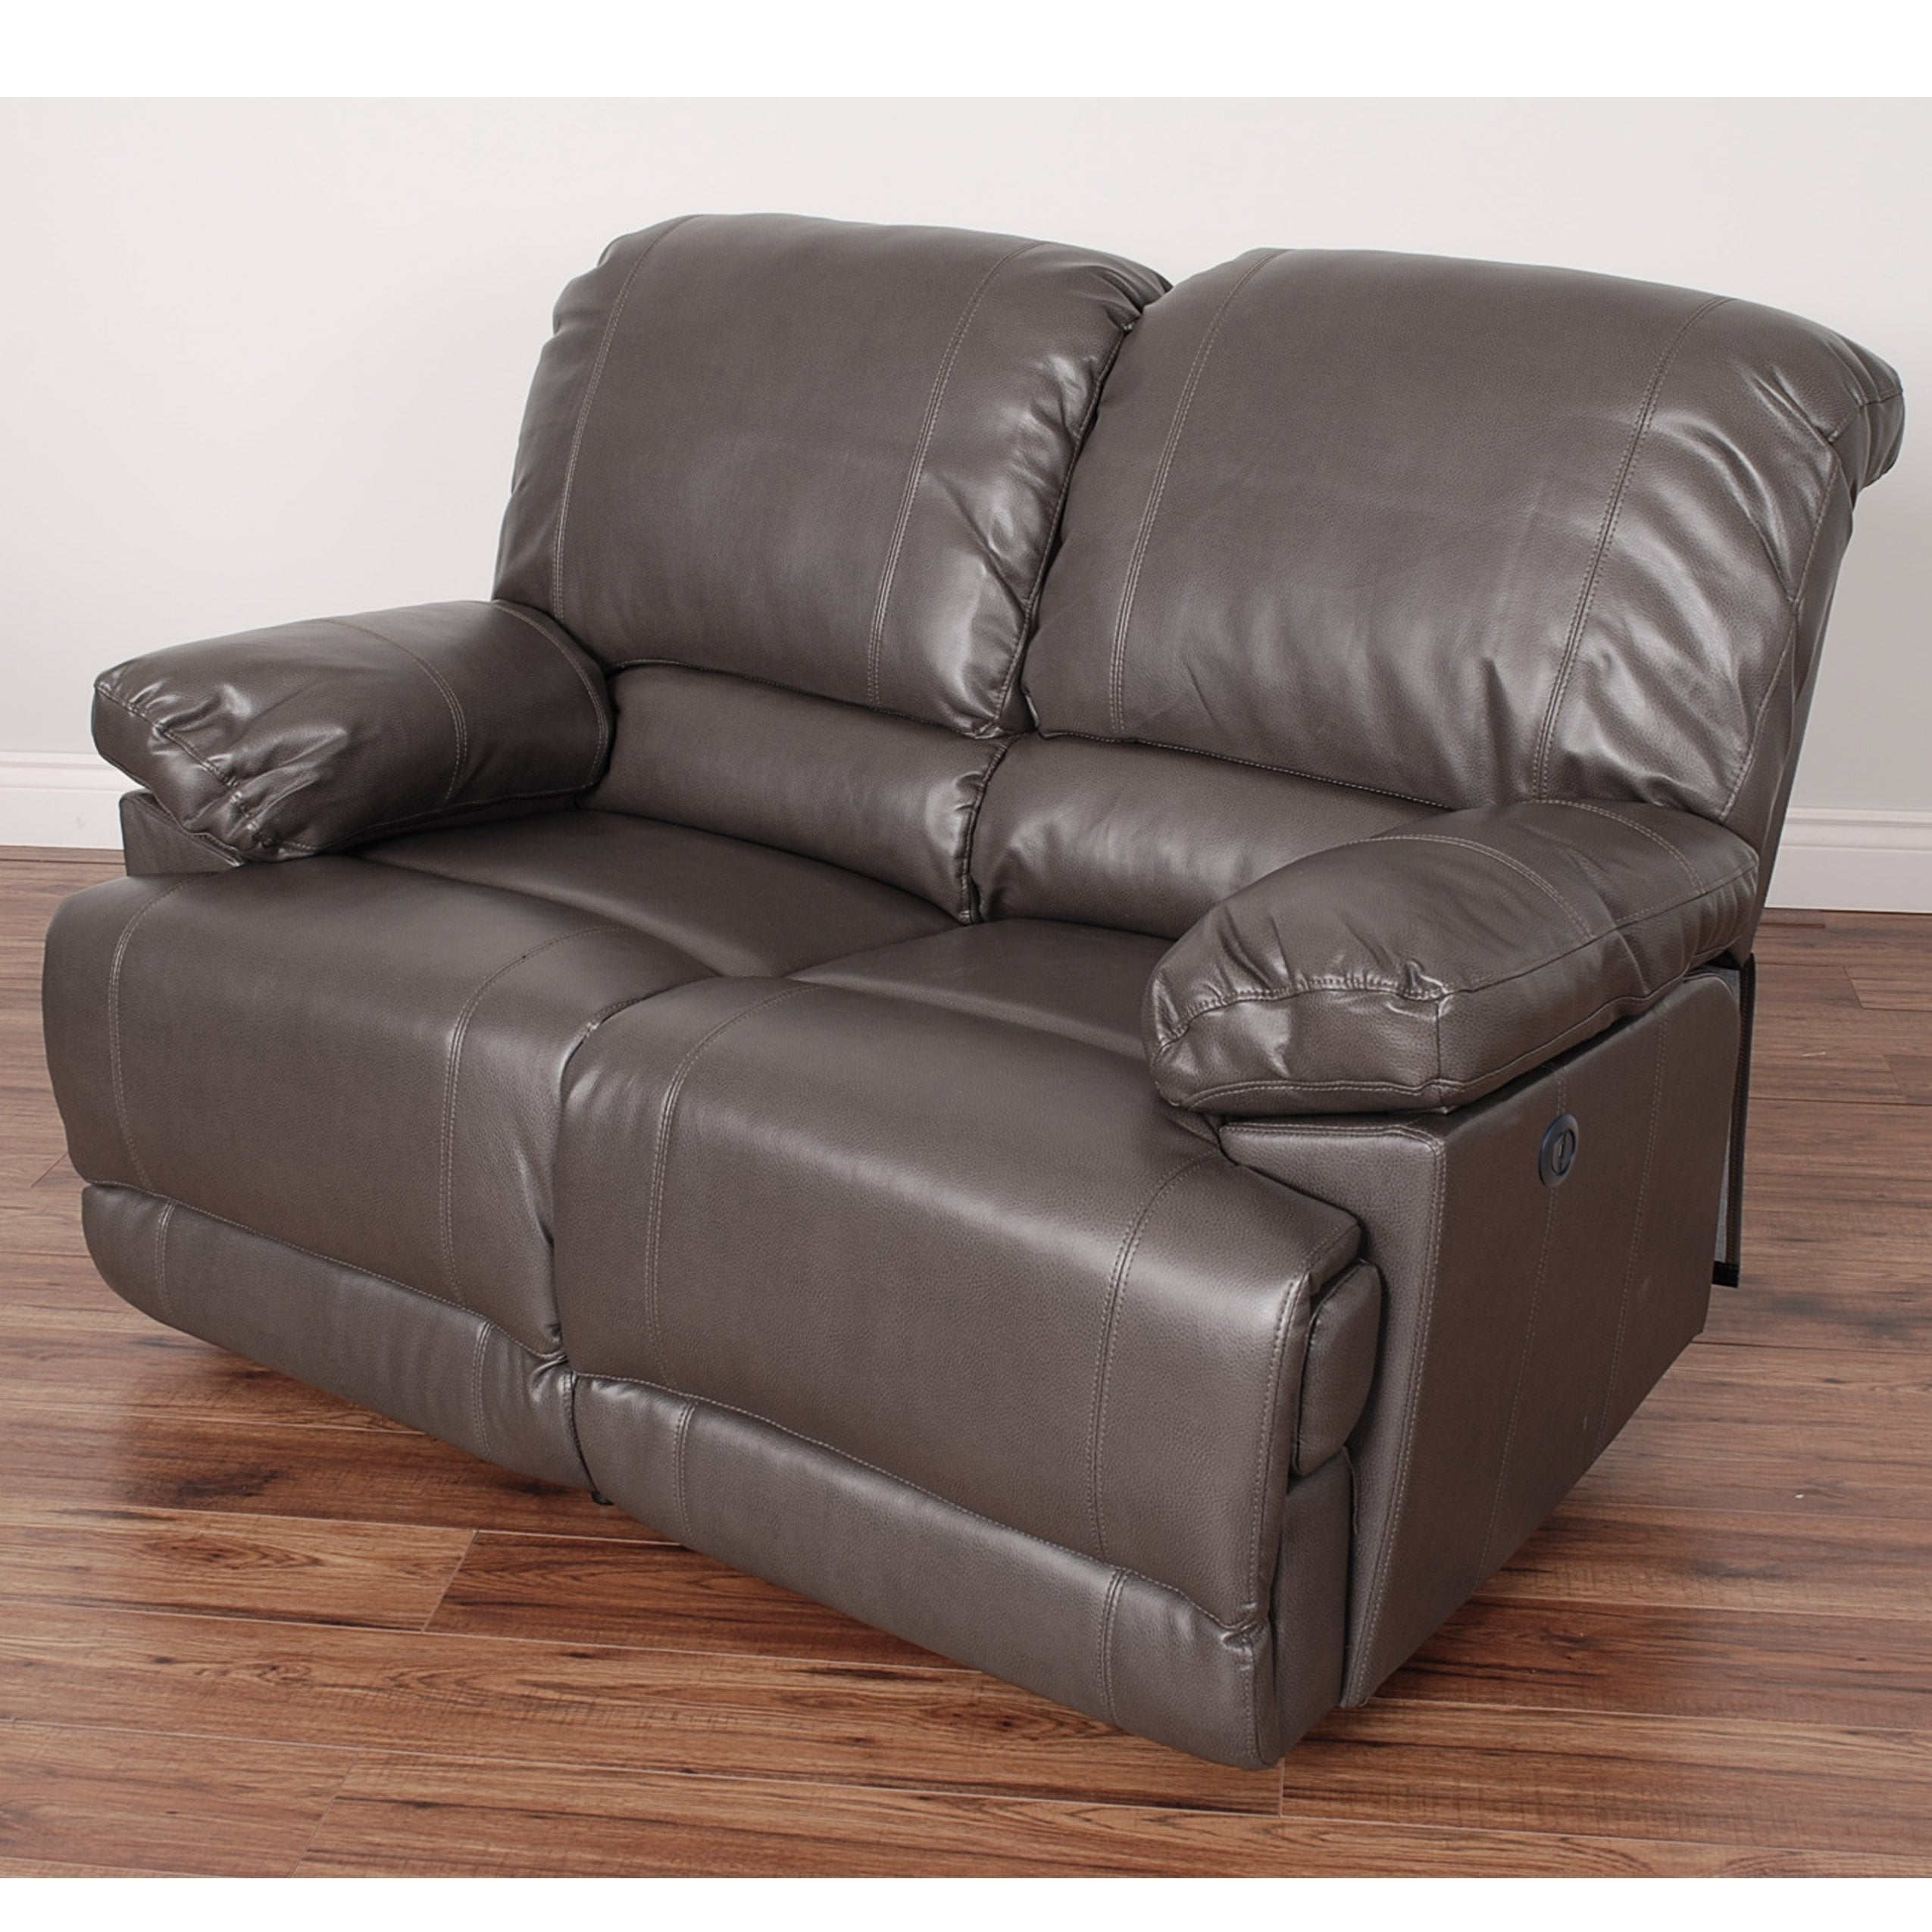 Shop Corliving Lea Bonded Leather Power Reclining Loveseat With Usb